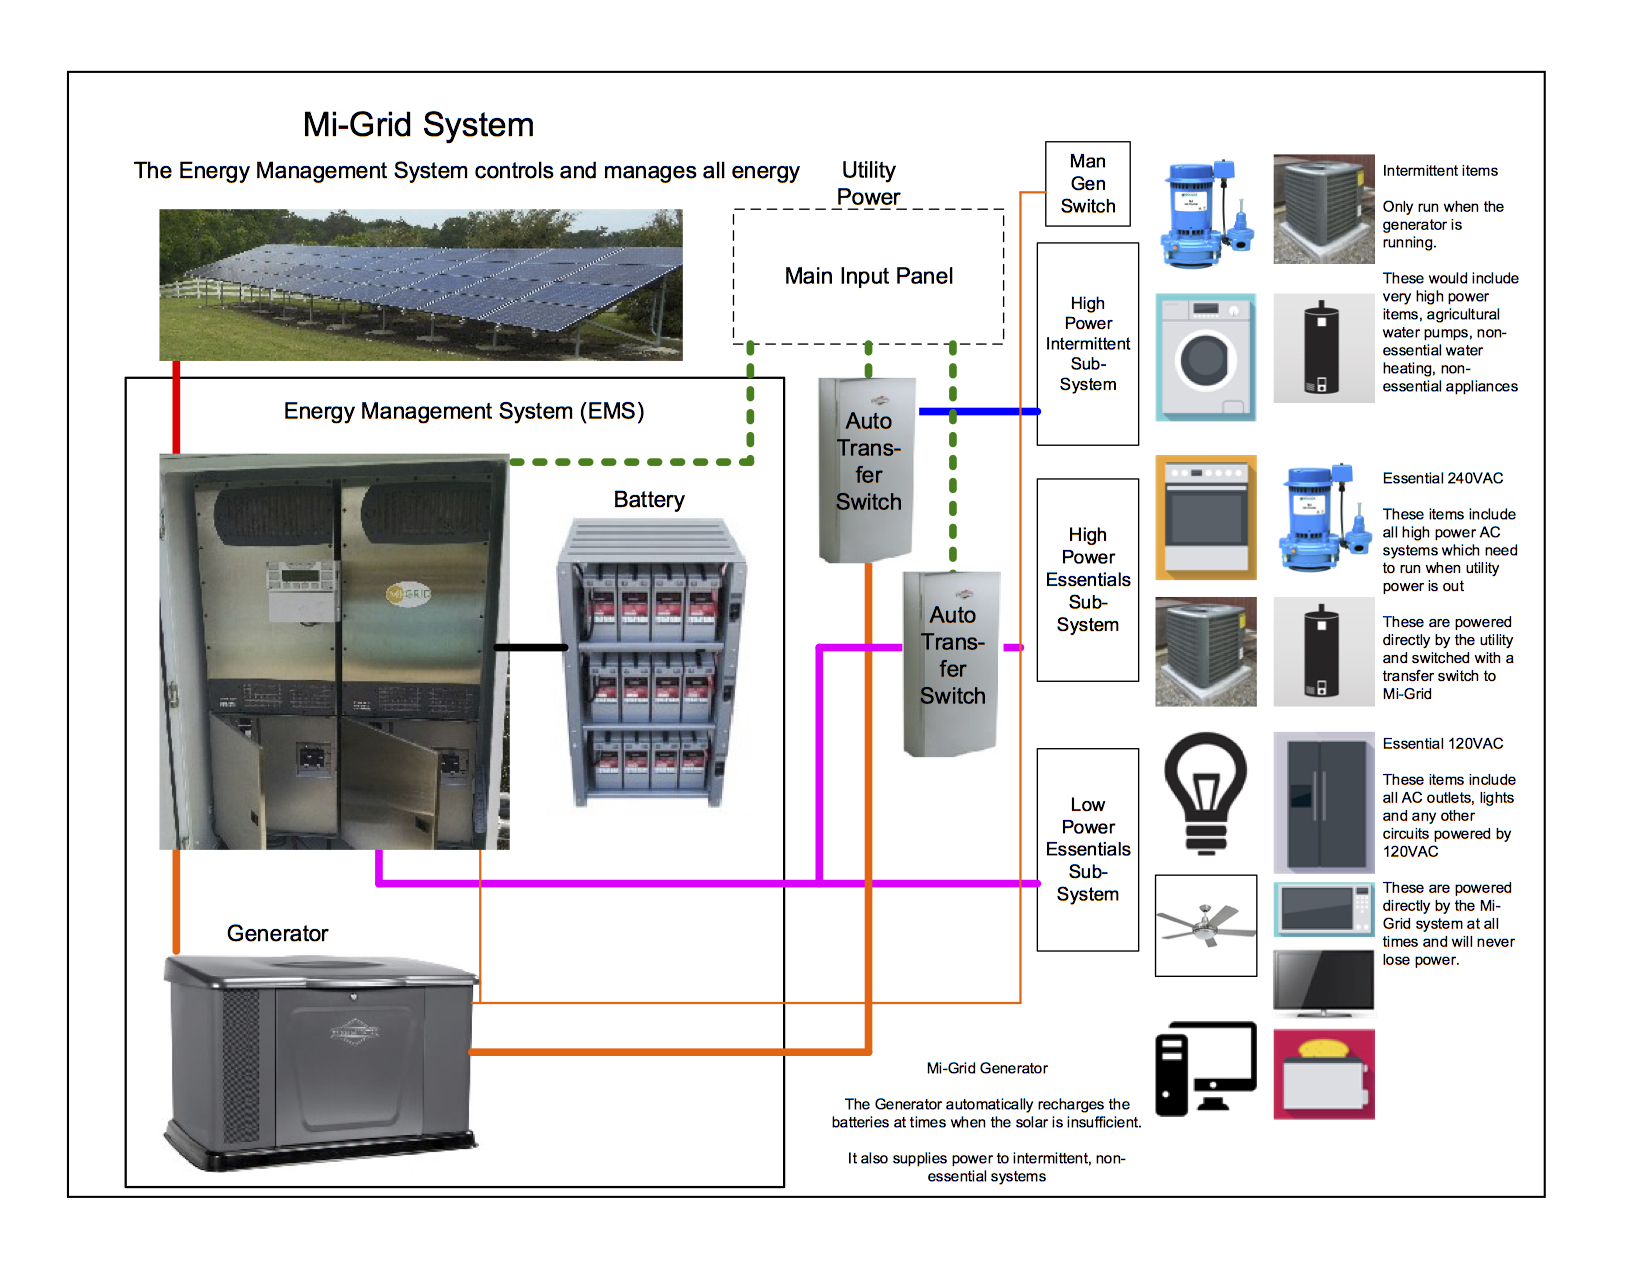 How a Mi-Grid microgrid can be configured with AC power.